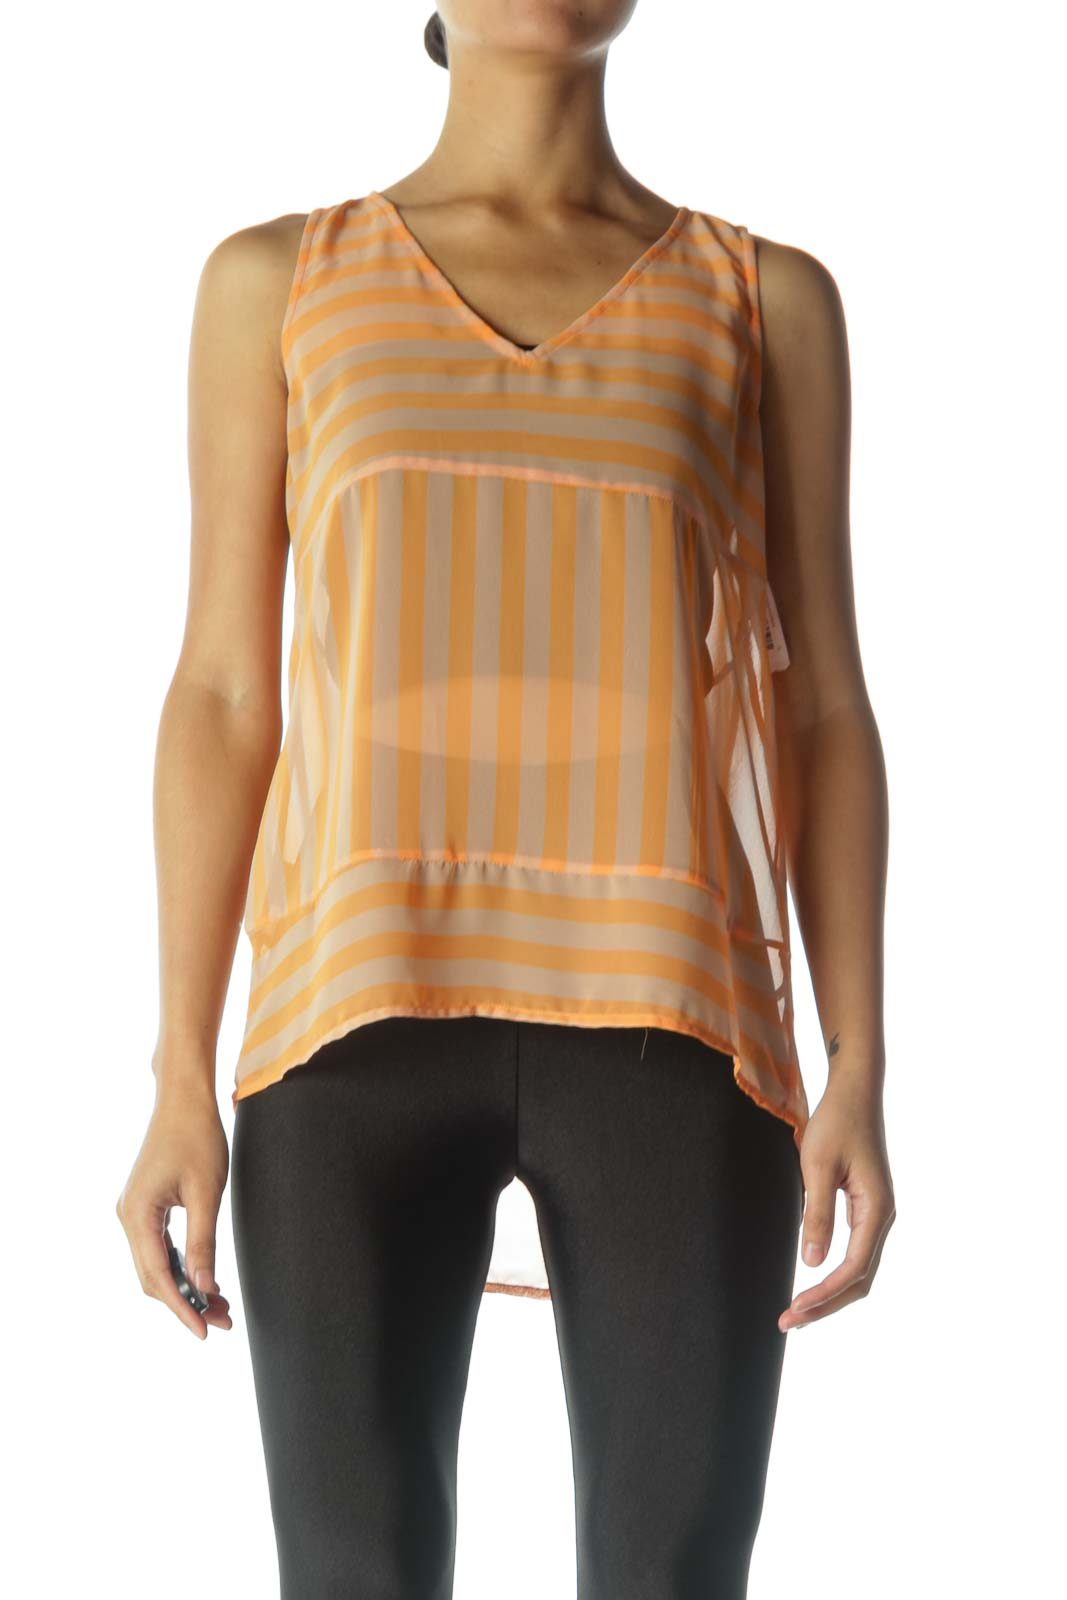 Orange Striped Sheer Tank Top